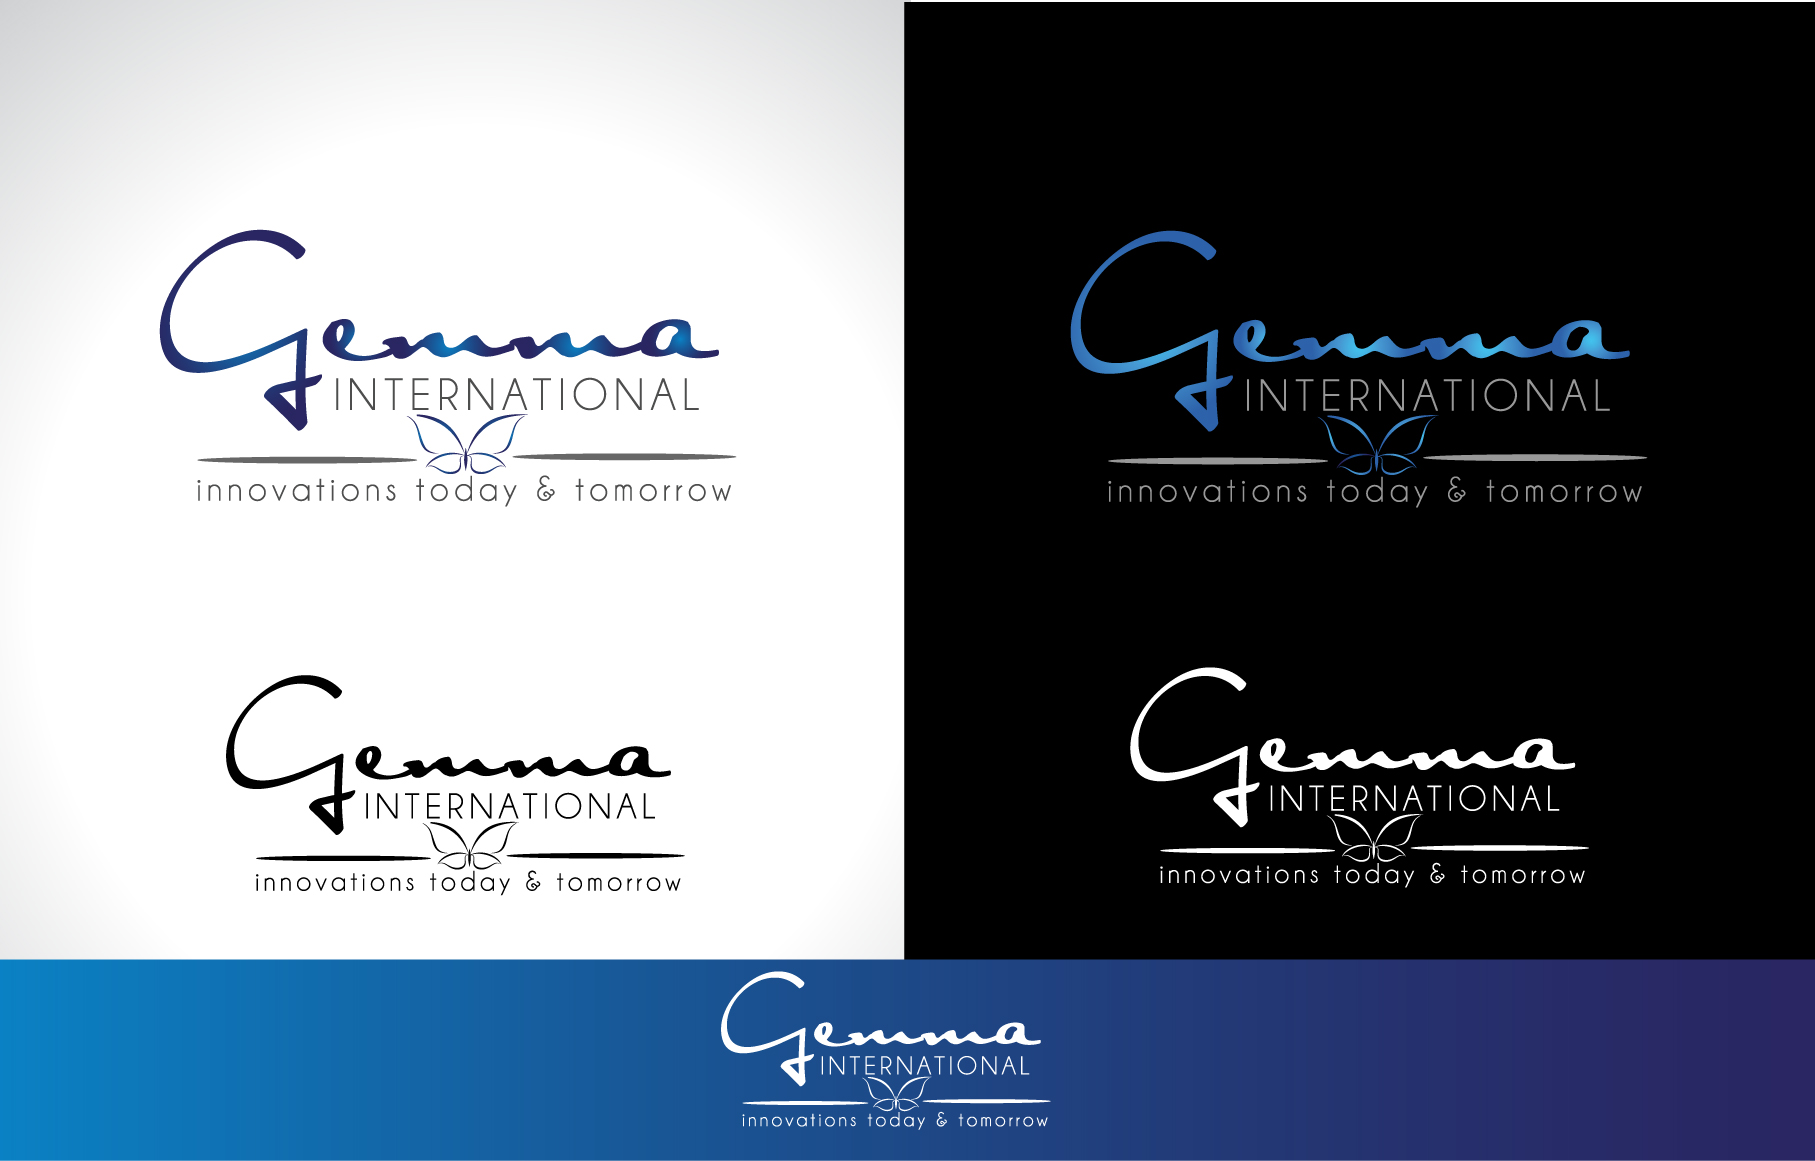 Logo Design by Darina Dimitrova - Entry No. 106 in the Logo Design Contest Artistic Logo Design for Gemma International.